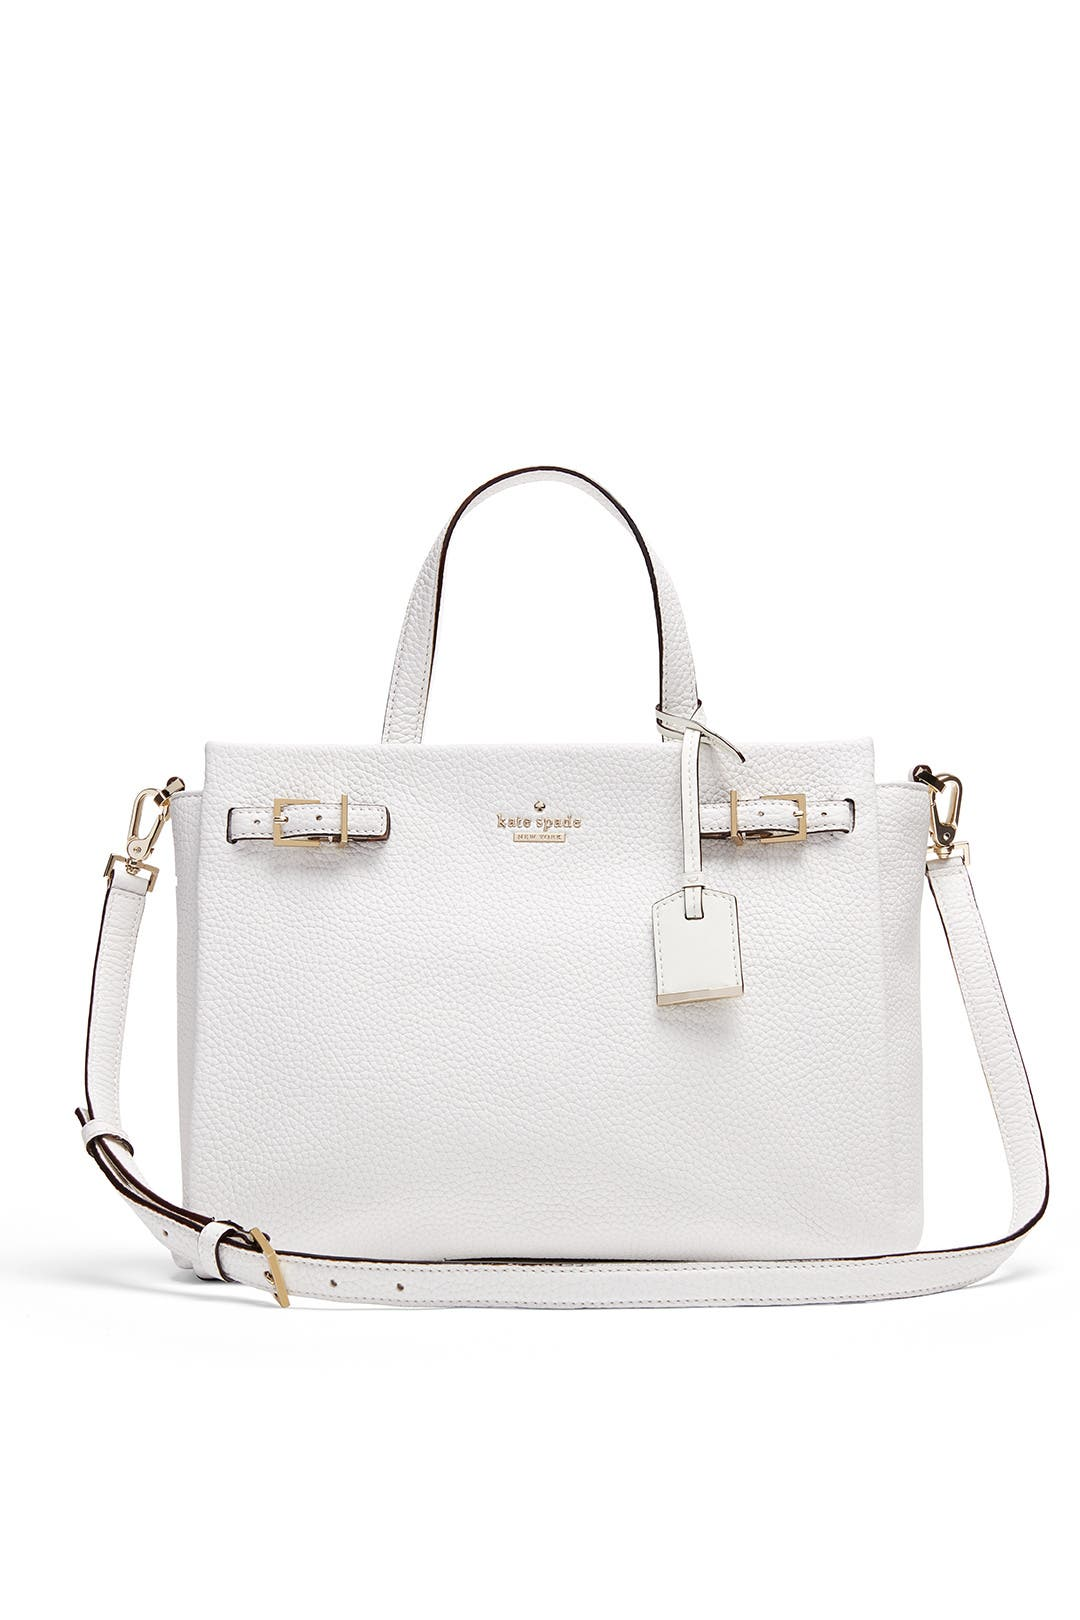 Holden Street Lanie Bag by kate spade new york accessories